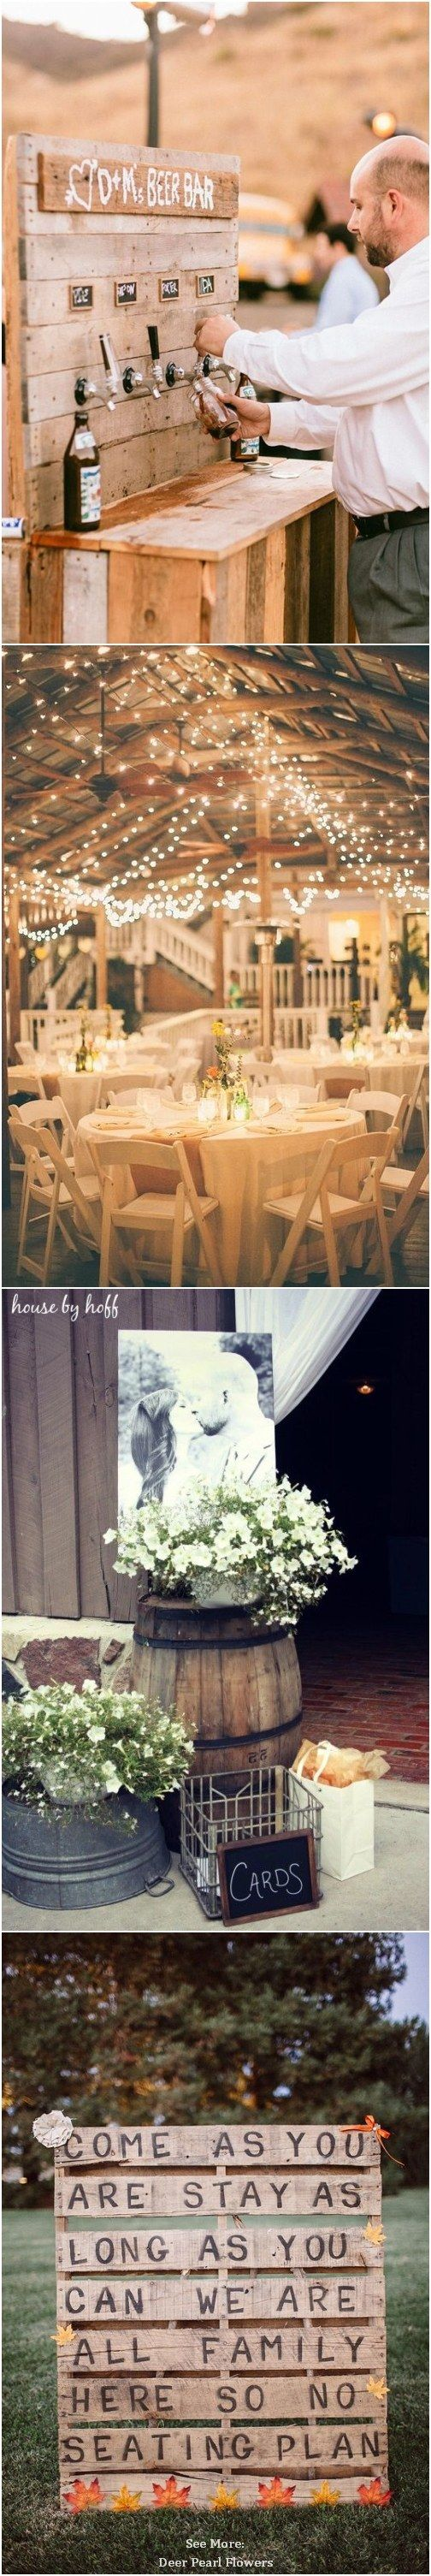 wedding packages western australia%0A    Perfect Rustic Country Wedding Ideas